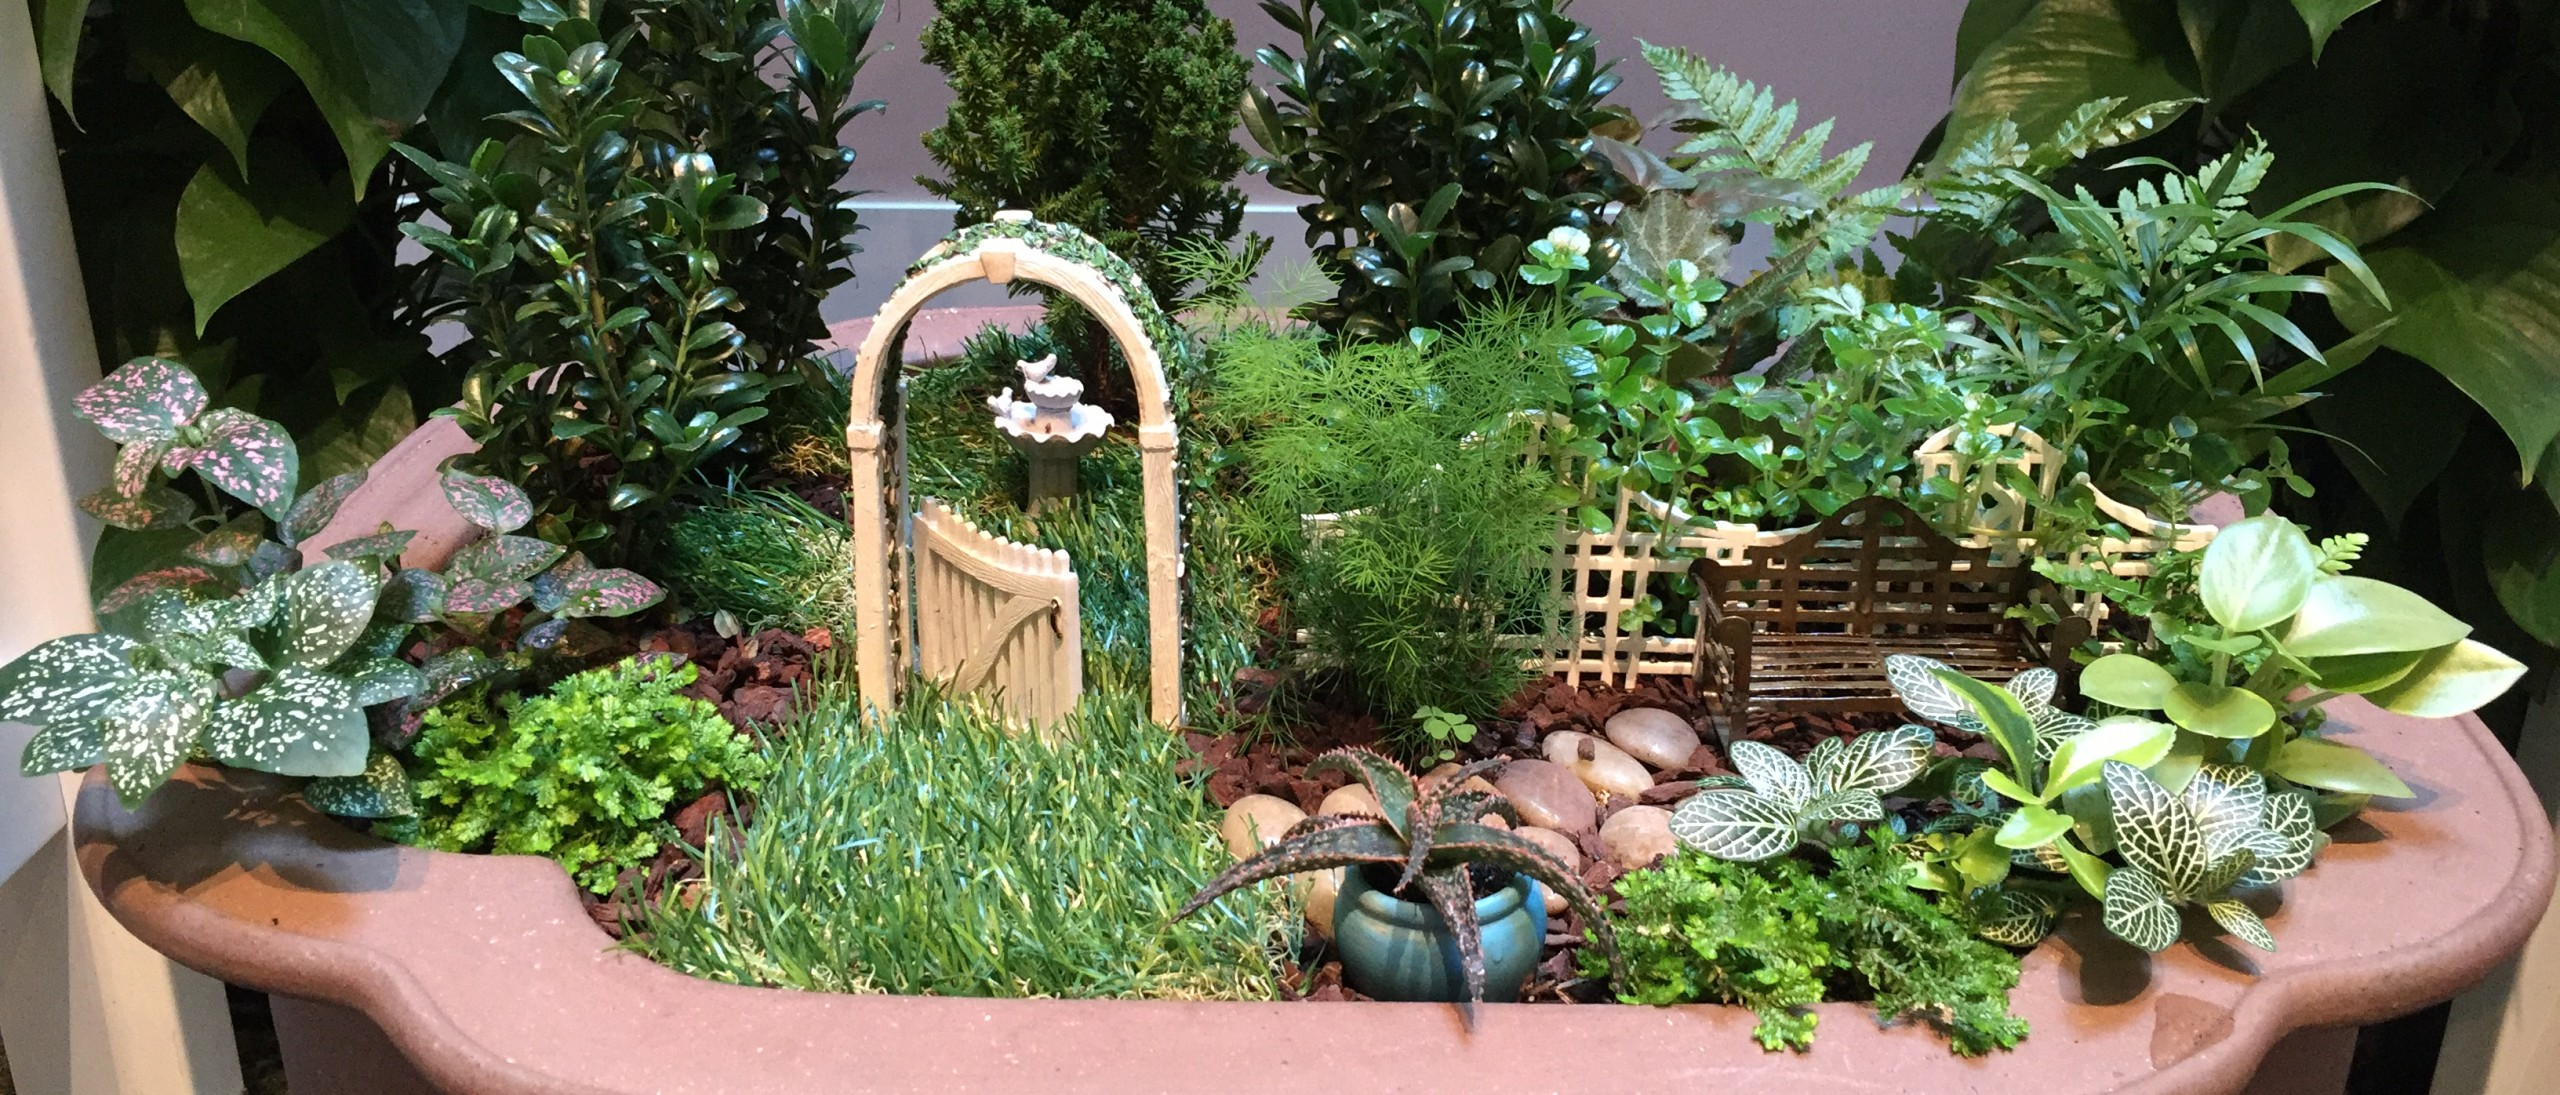 Miniature garden of moss, grass, and ferns with tiny garden gate, fence, birdbath, and bench in terracotta planter